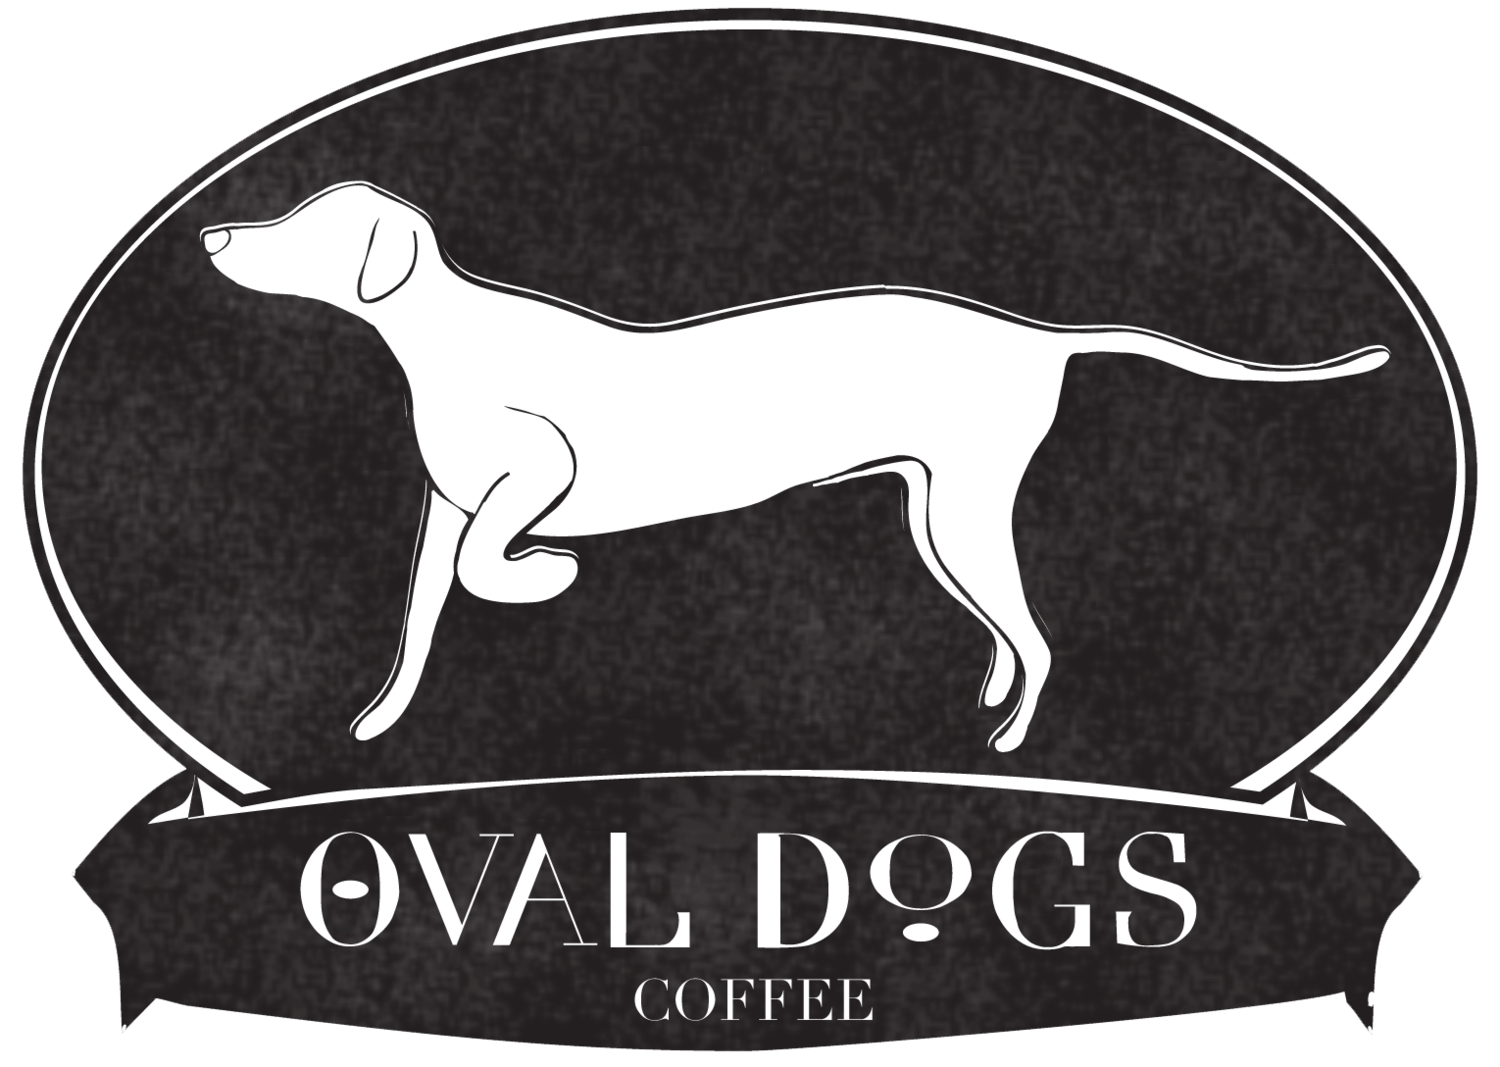 Oval Dogs Coffee and Tea